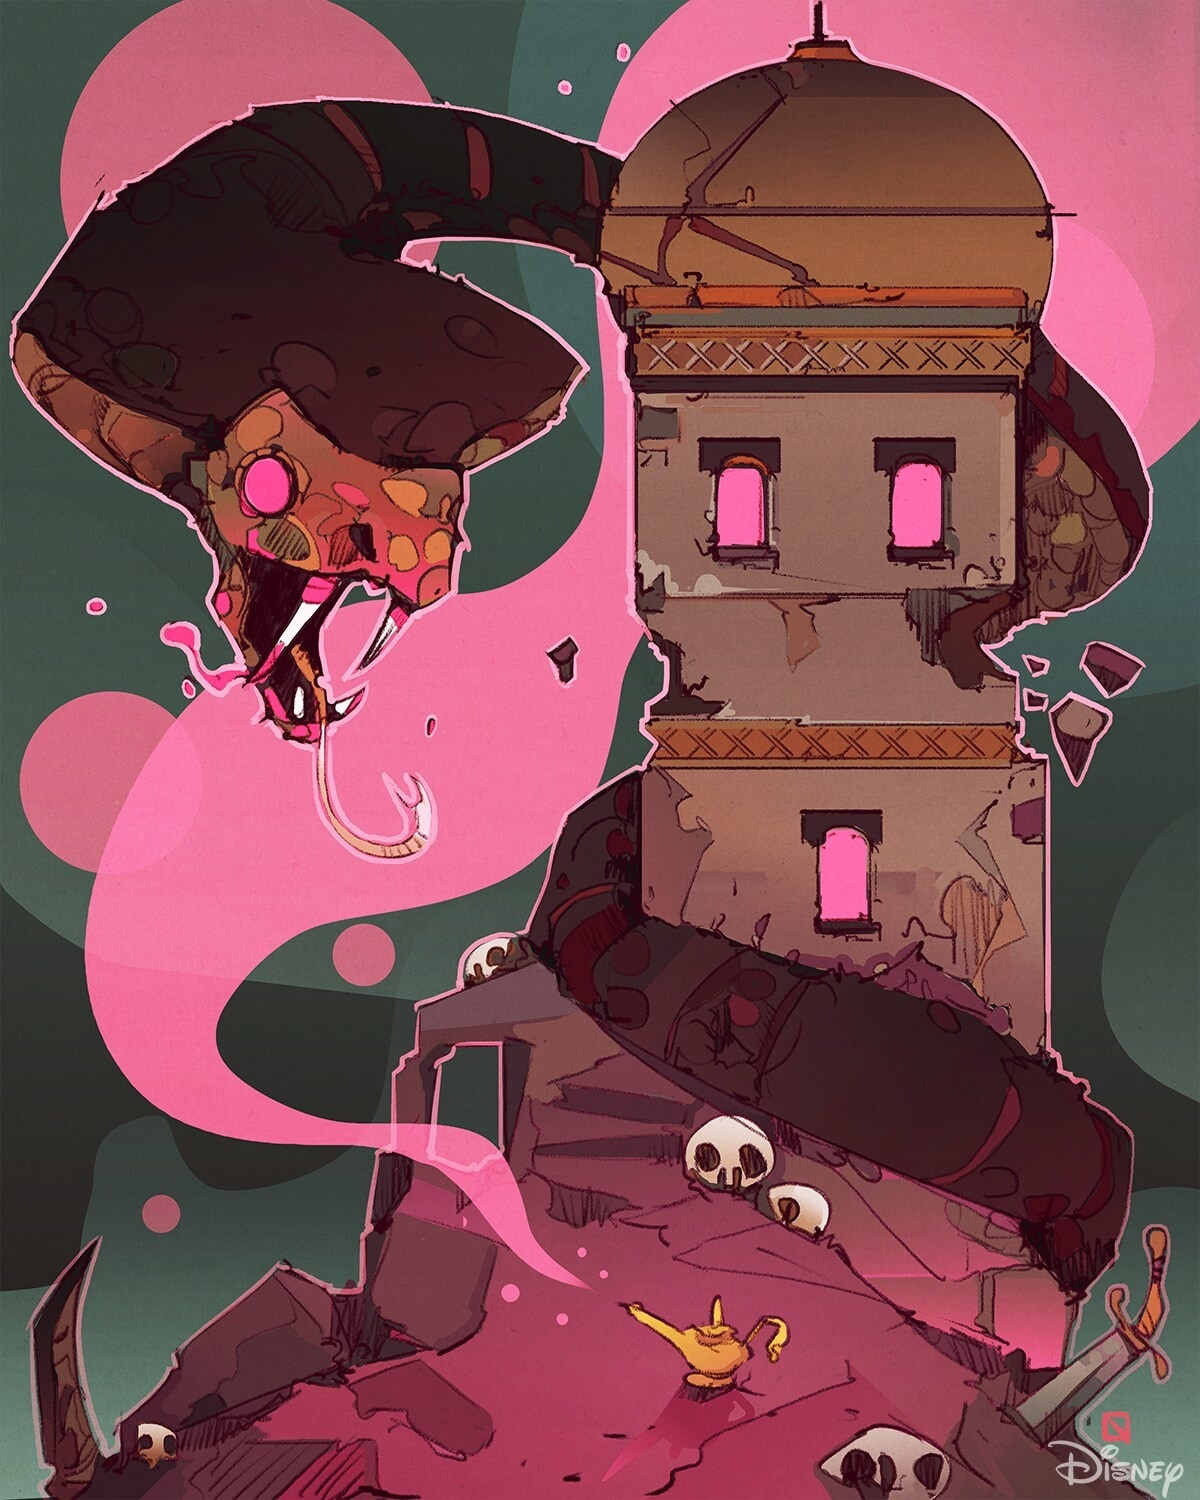 Jafar as a snake wrapping around a tower surrounded by pink smoke coming out of the lamp